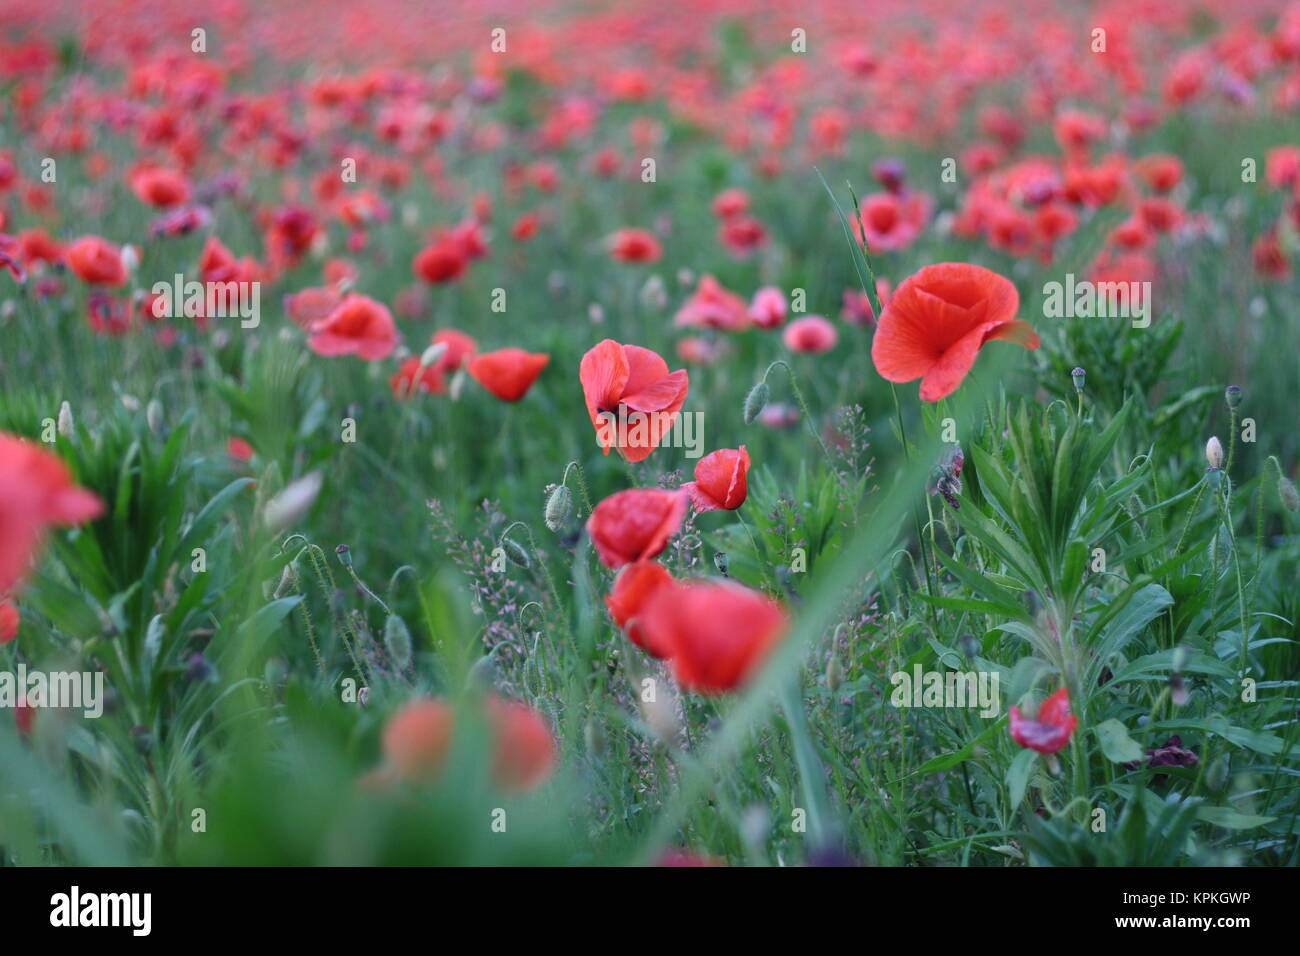 poppy field wallpaper stock photos & poppy field wallpaper stock